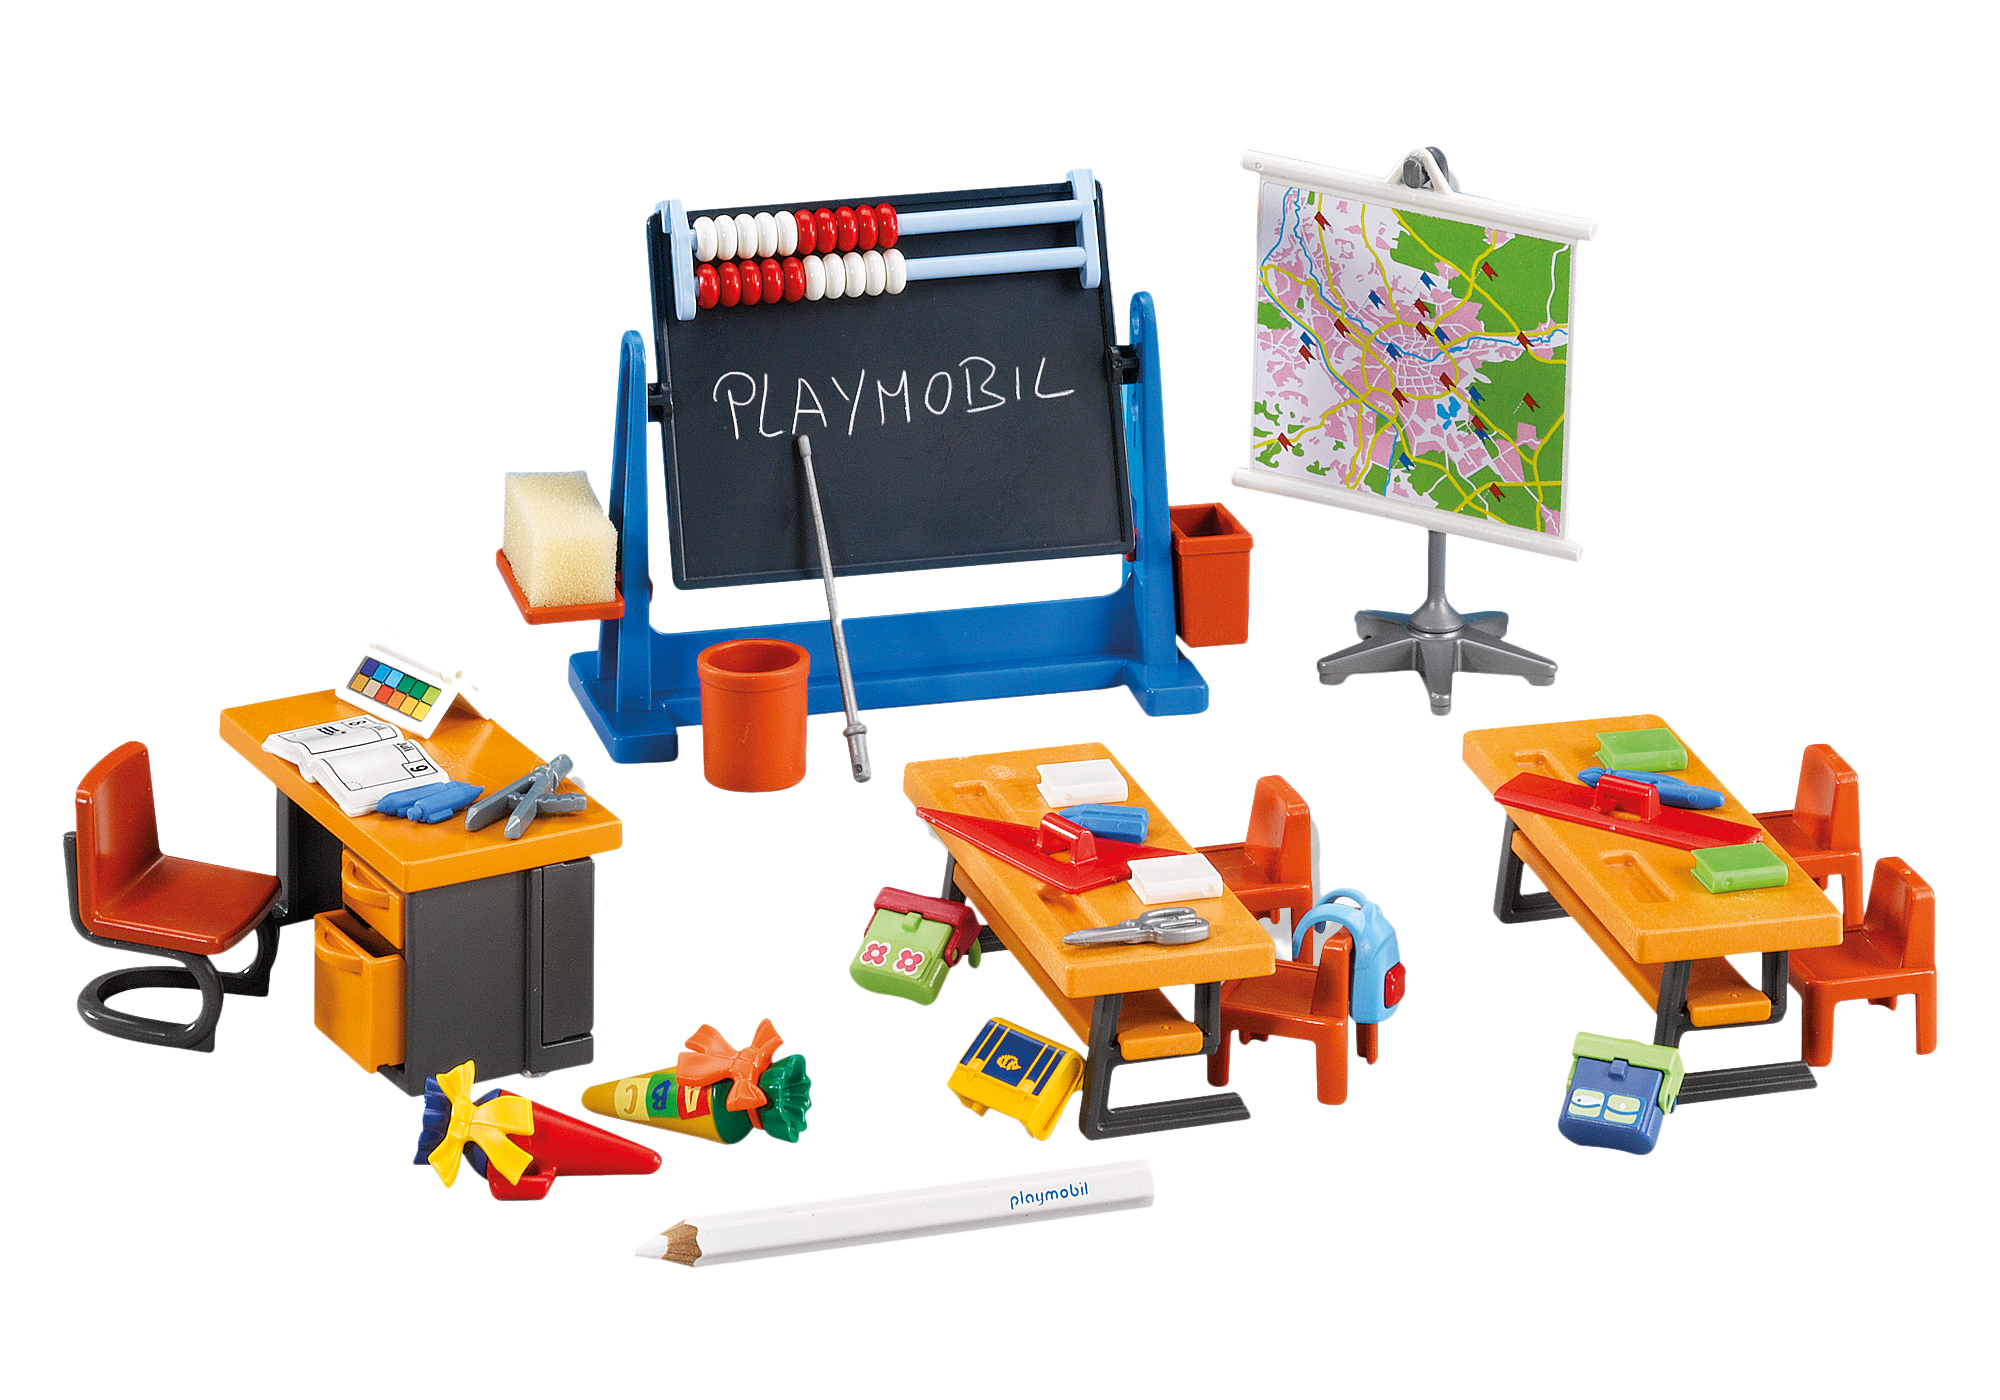 http://media.playmobil.com/i/playmobil/7486_product_detail